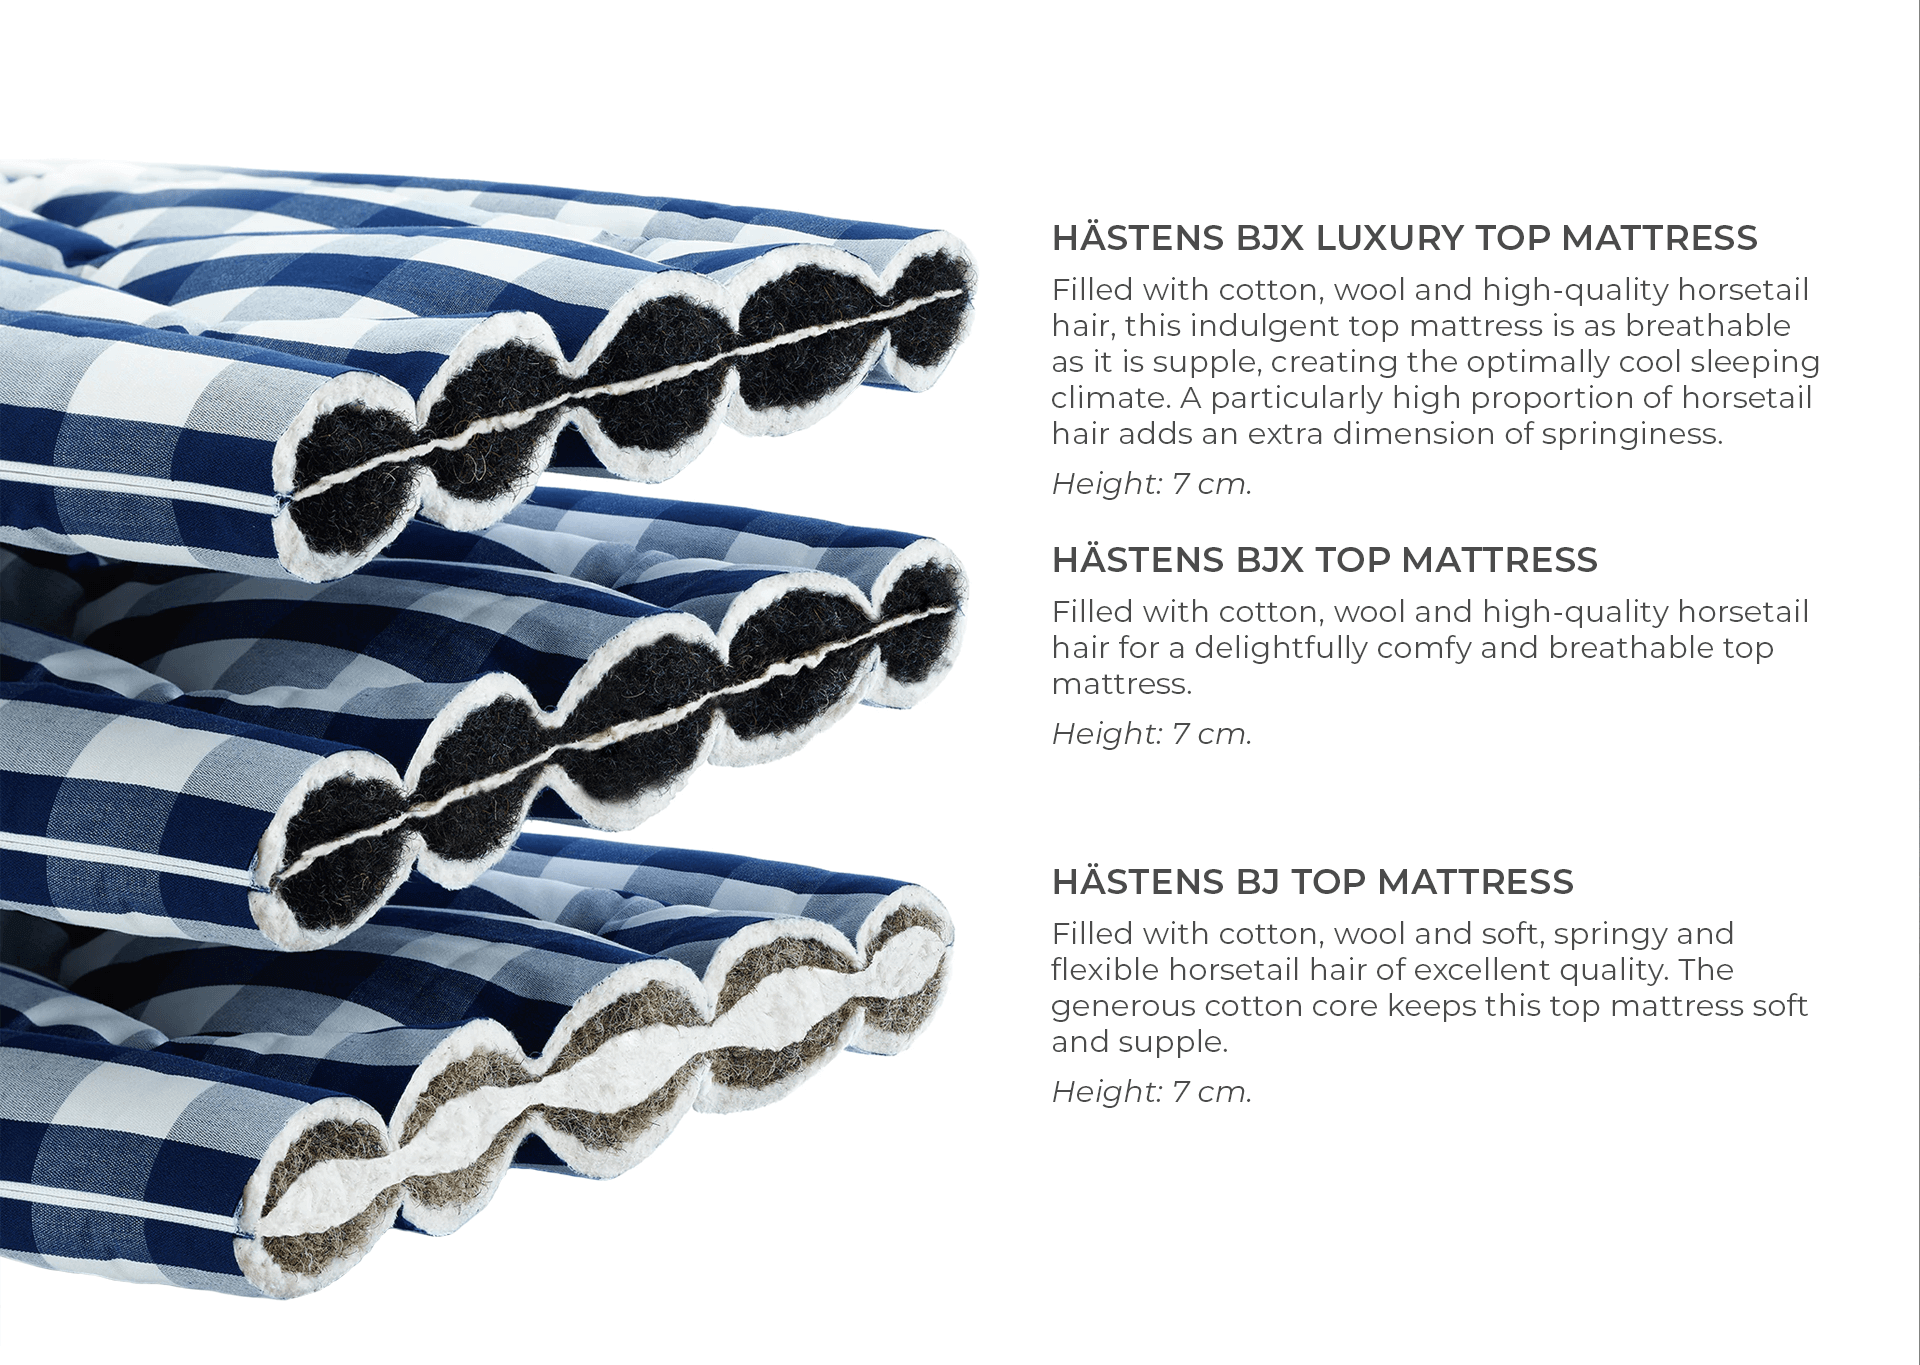 Hastens Top Mattresses